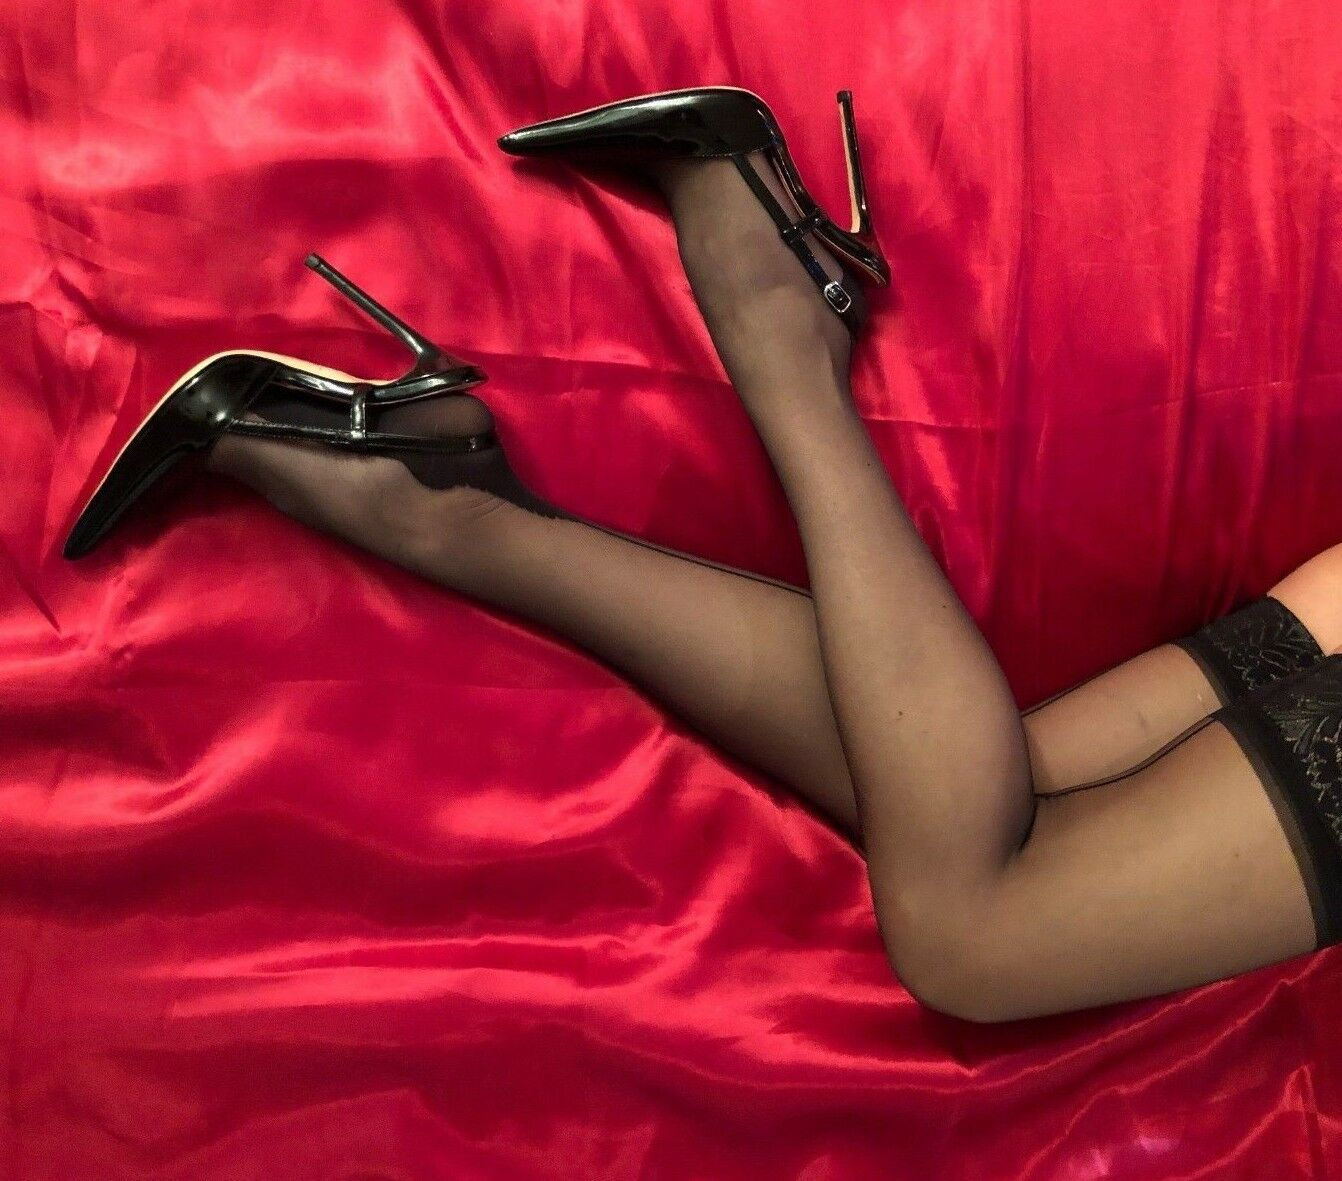 CQ COUTURE POINTY HOT HEELS PUMPS SCHUHE SCHUHE SCHUHE COURT SHOES SLINGBACK LEATHER BLACK 41 673528